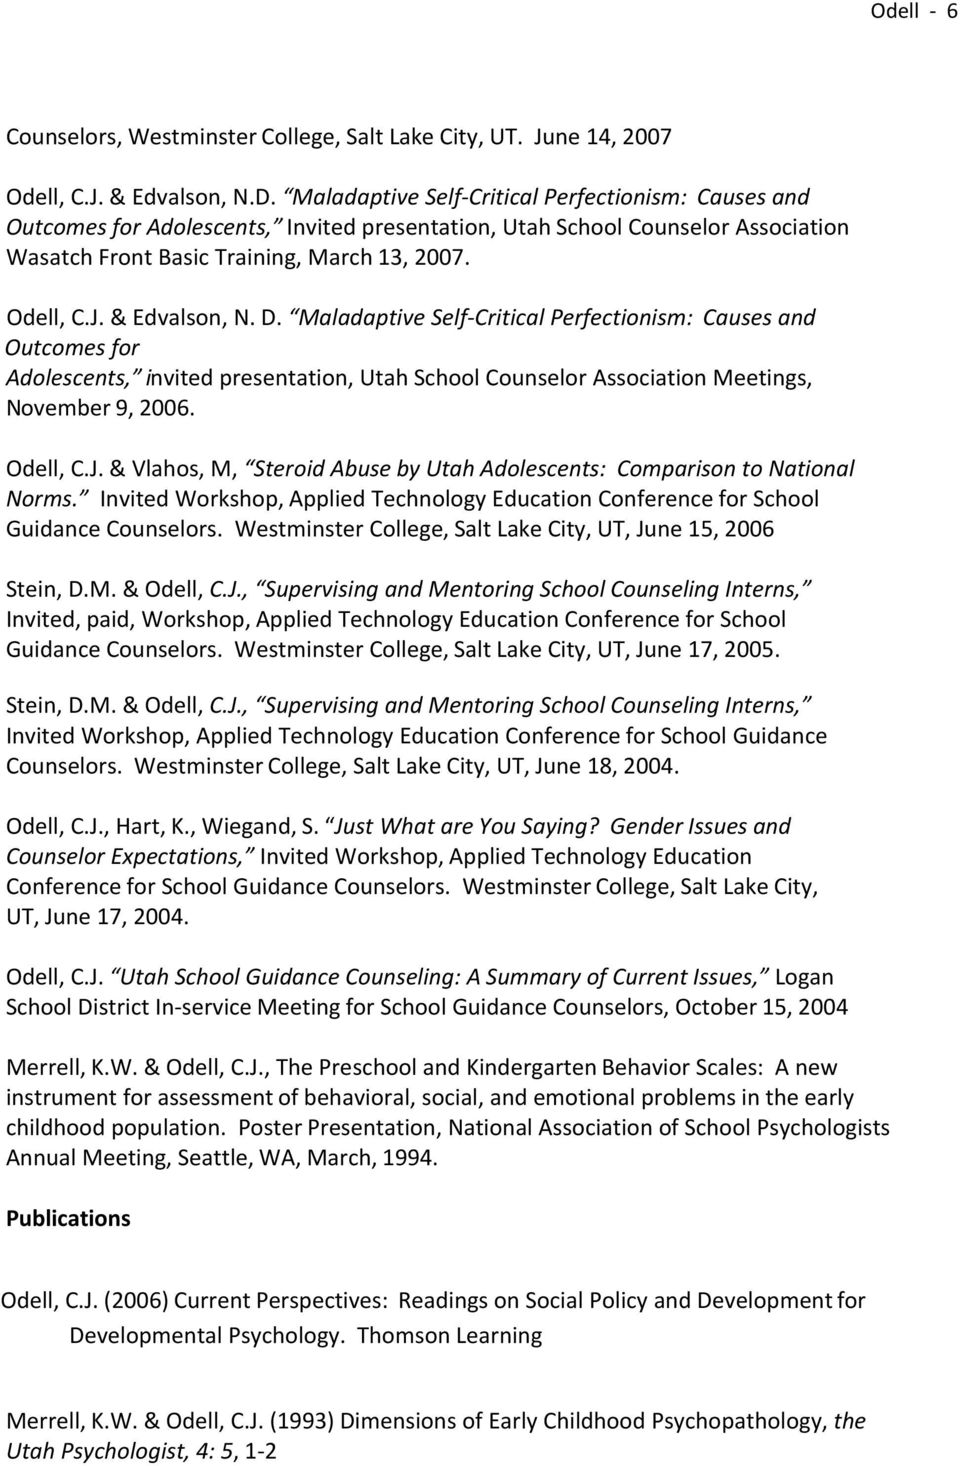 & Edvalson, N. D. Maladaptive Self Critical Perfectionism: Causes and Outcomes for Adolescents, invited presentation, Utah School Counselor Association Meetings, November 9, 2006. Odell, C.J.